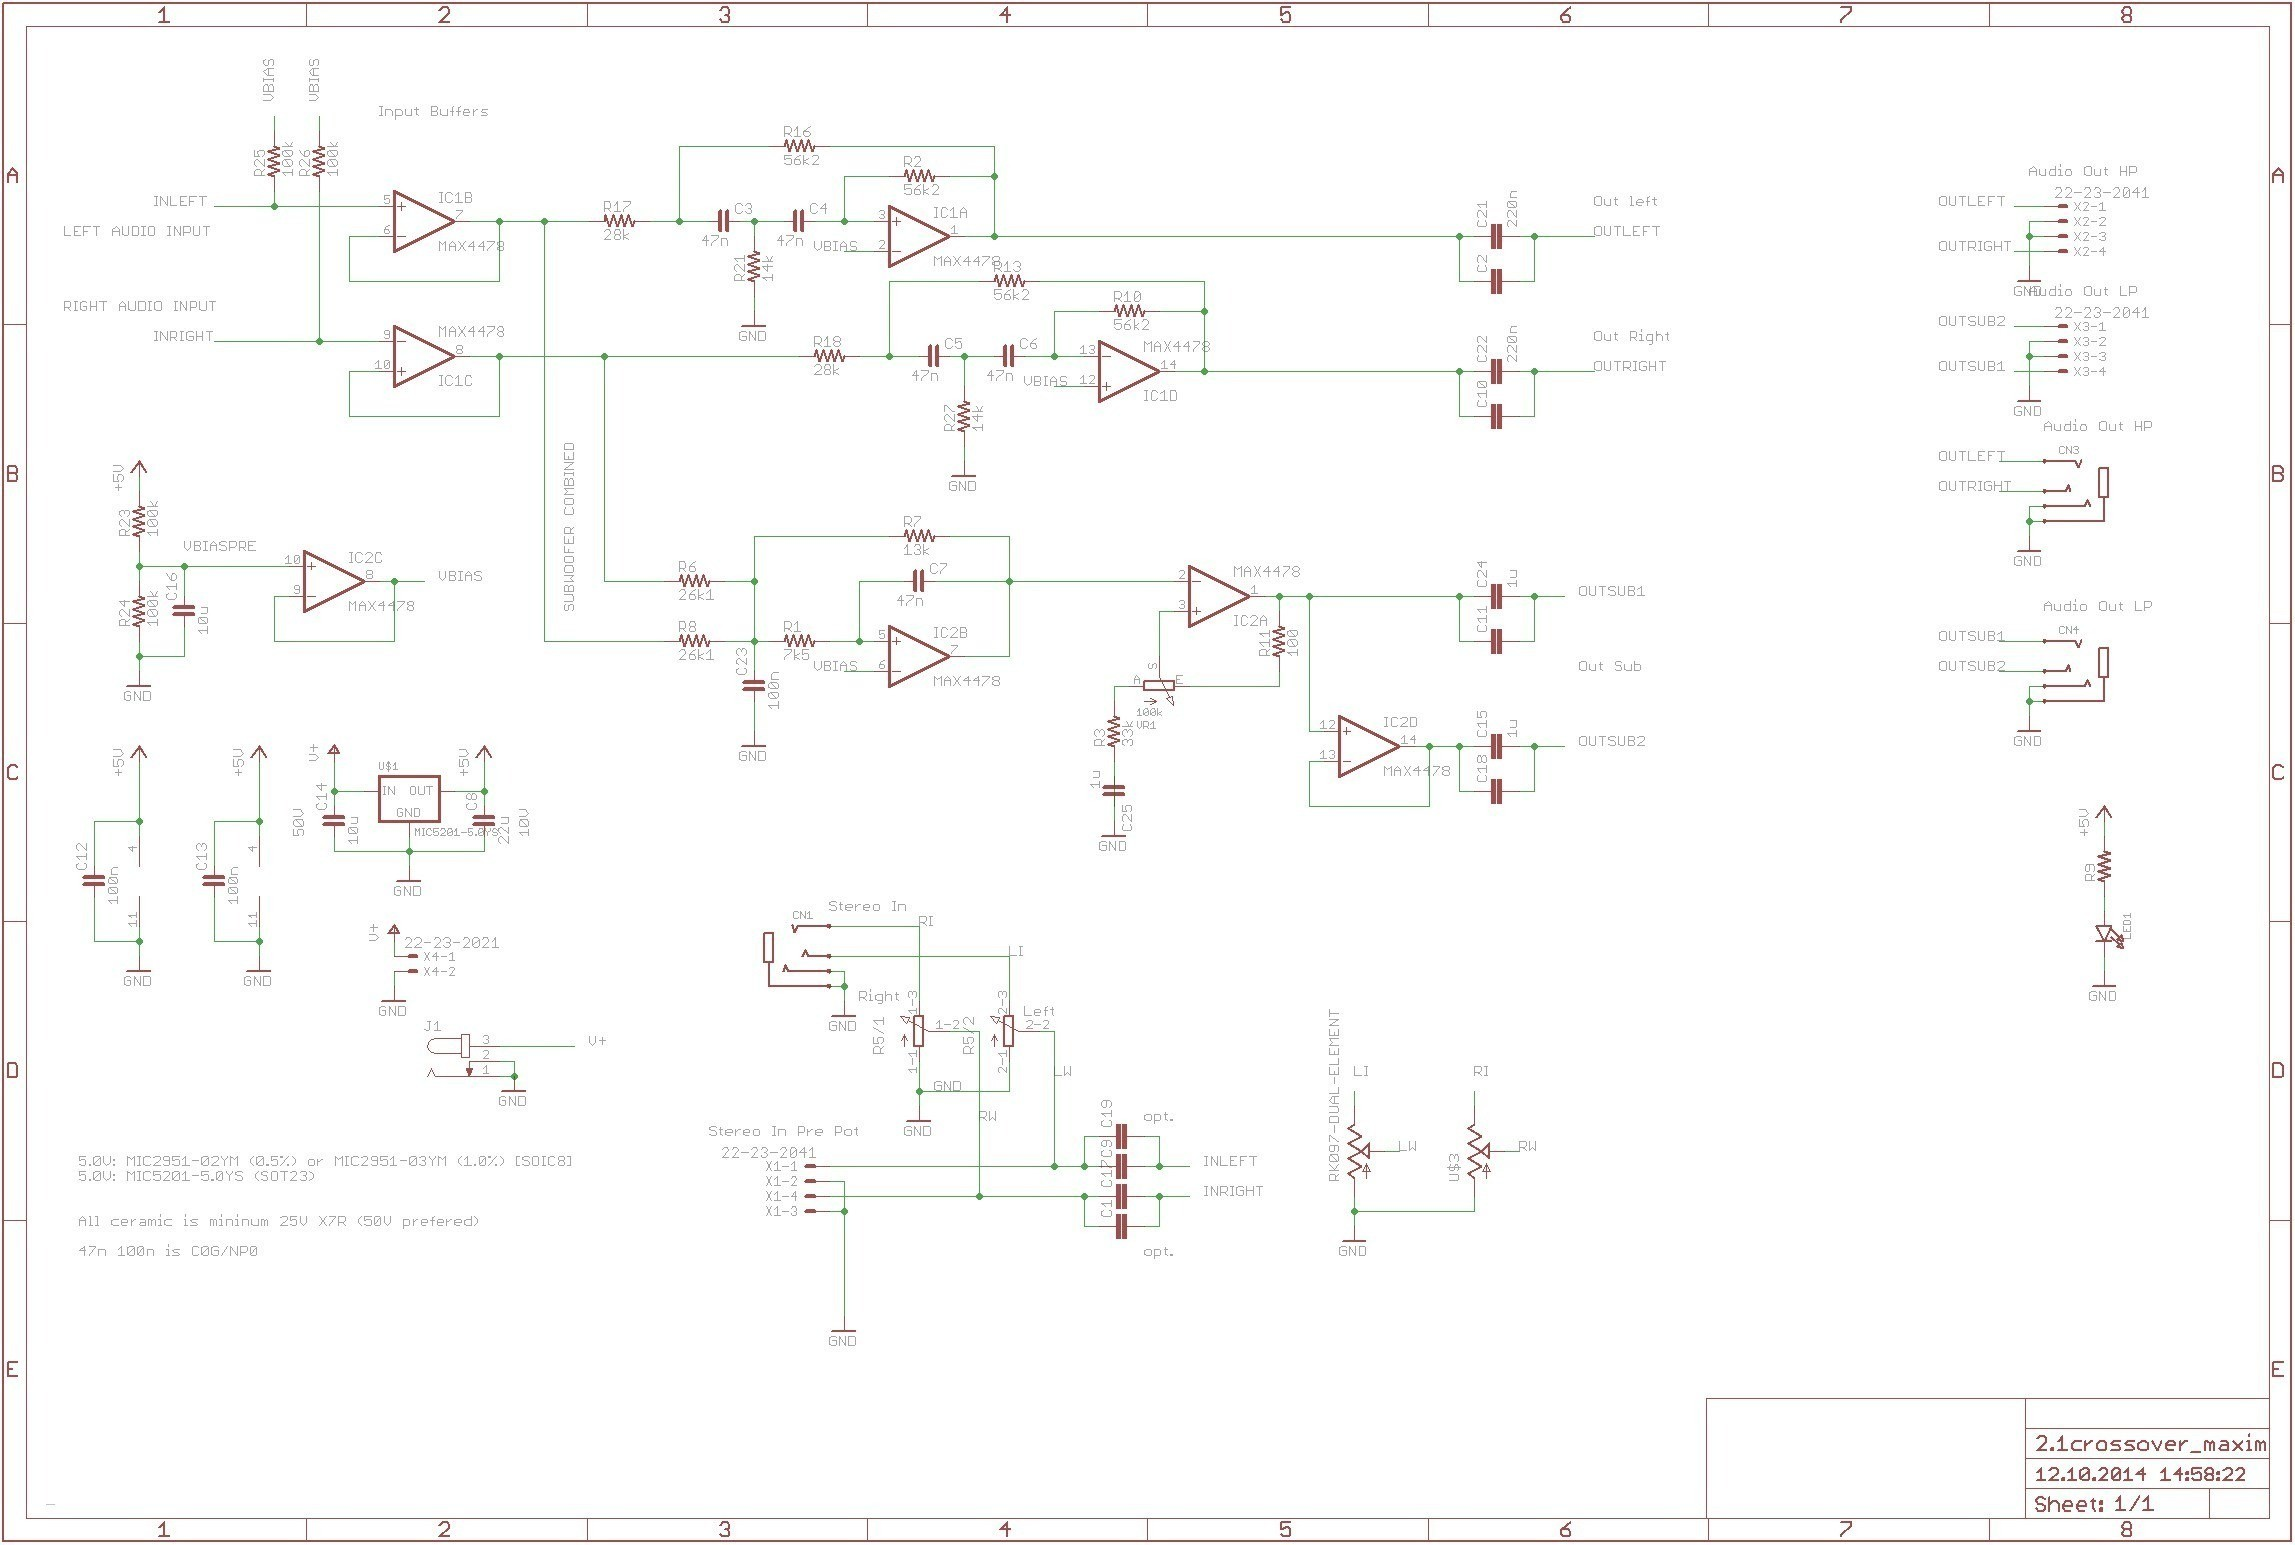 crossover cable diagram Collection Aktive Crossoverfrequenzweiche Mit Max4478 360customs Crossover Schematic Rev 0d wiring lighting